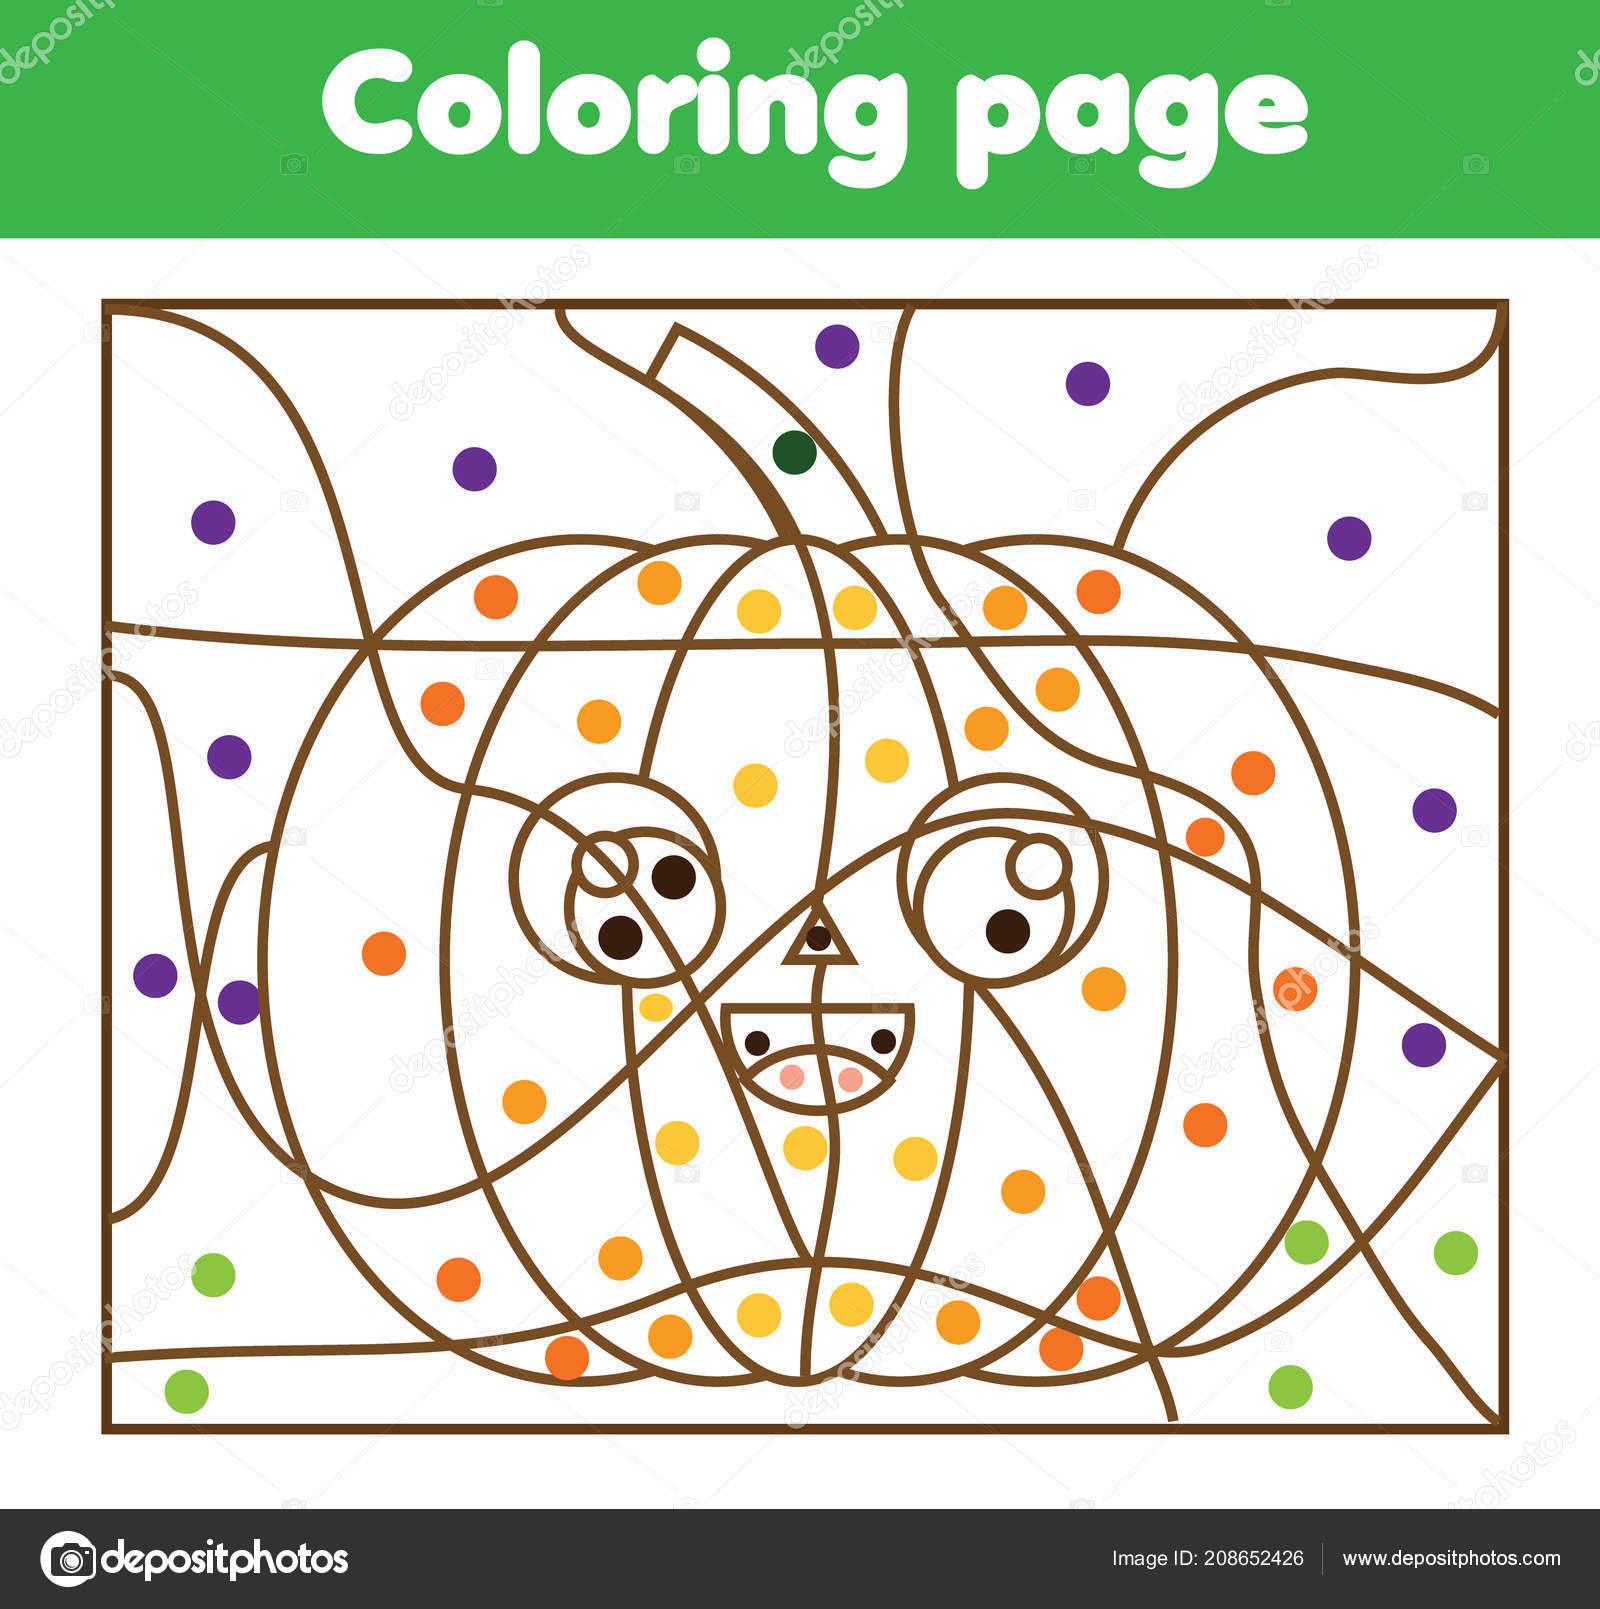 Halloween Pumpkin Coloring Pages Printables Children Educational Game Coloring Page Cartoon Halloween Pumpkin